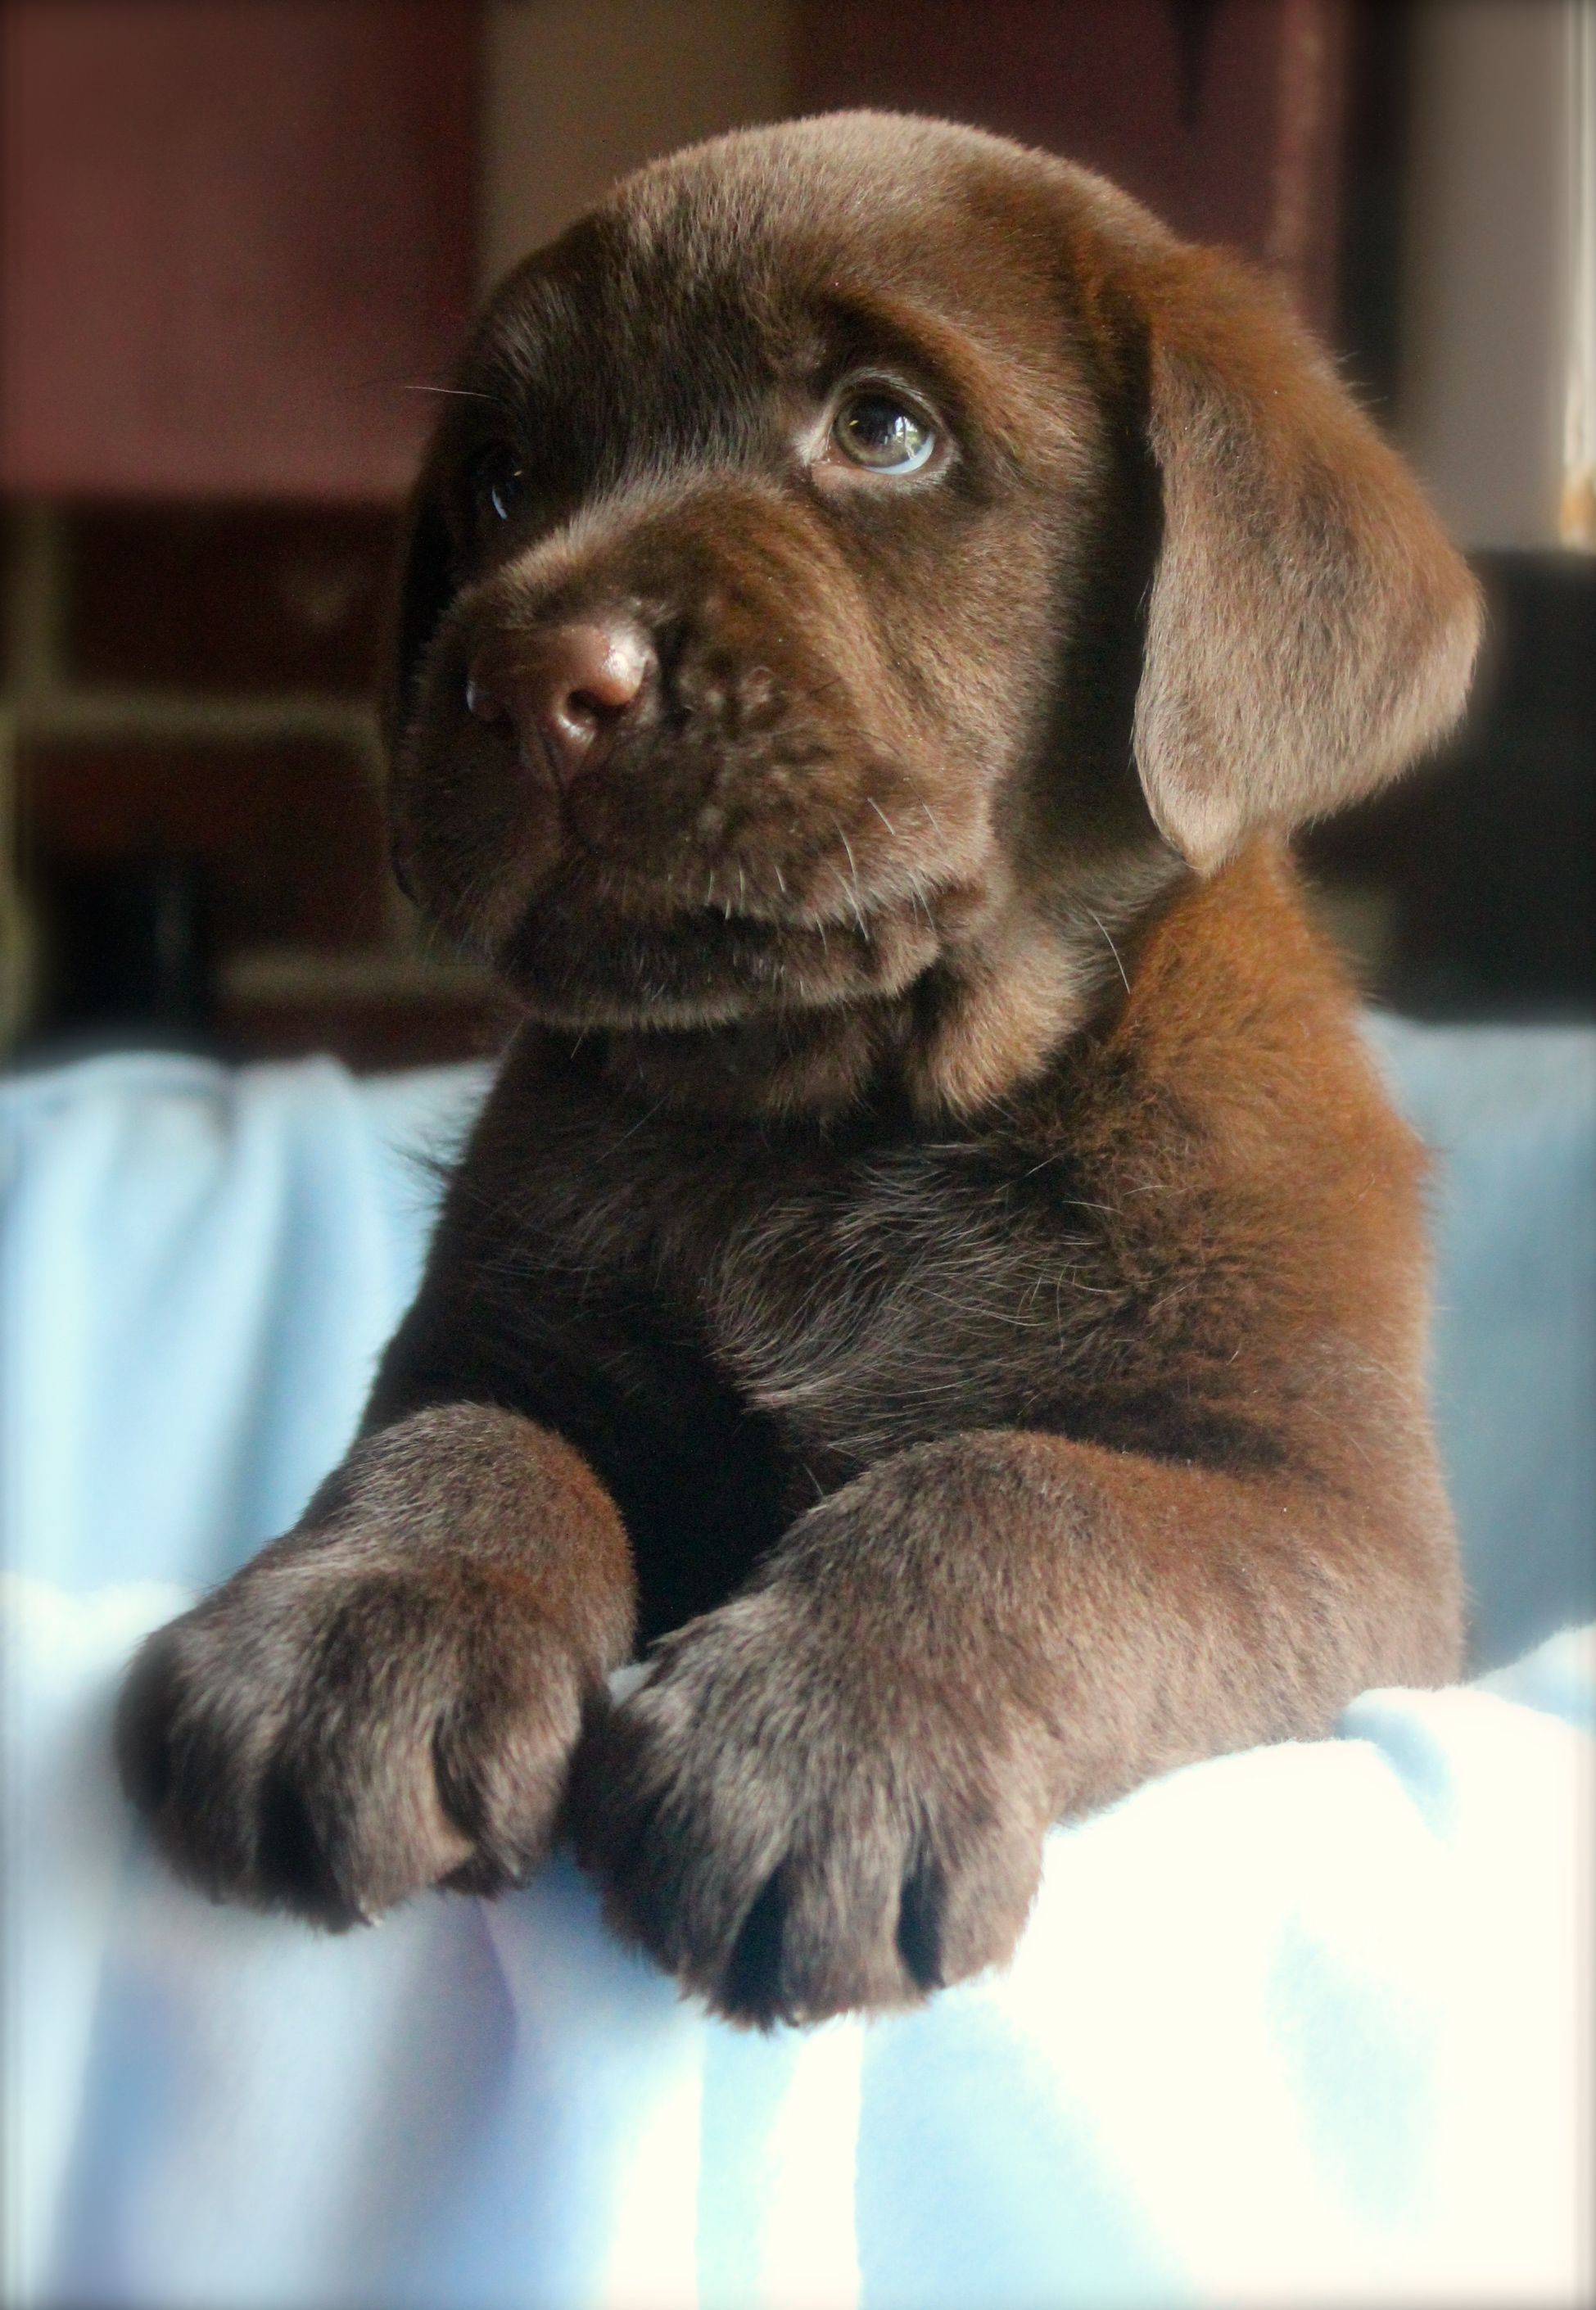 Latest puppy photo session! Chocolate boy. | Cute Puppies ...